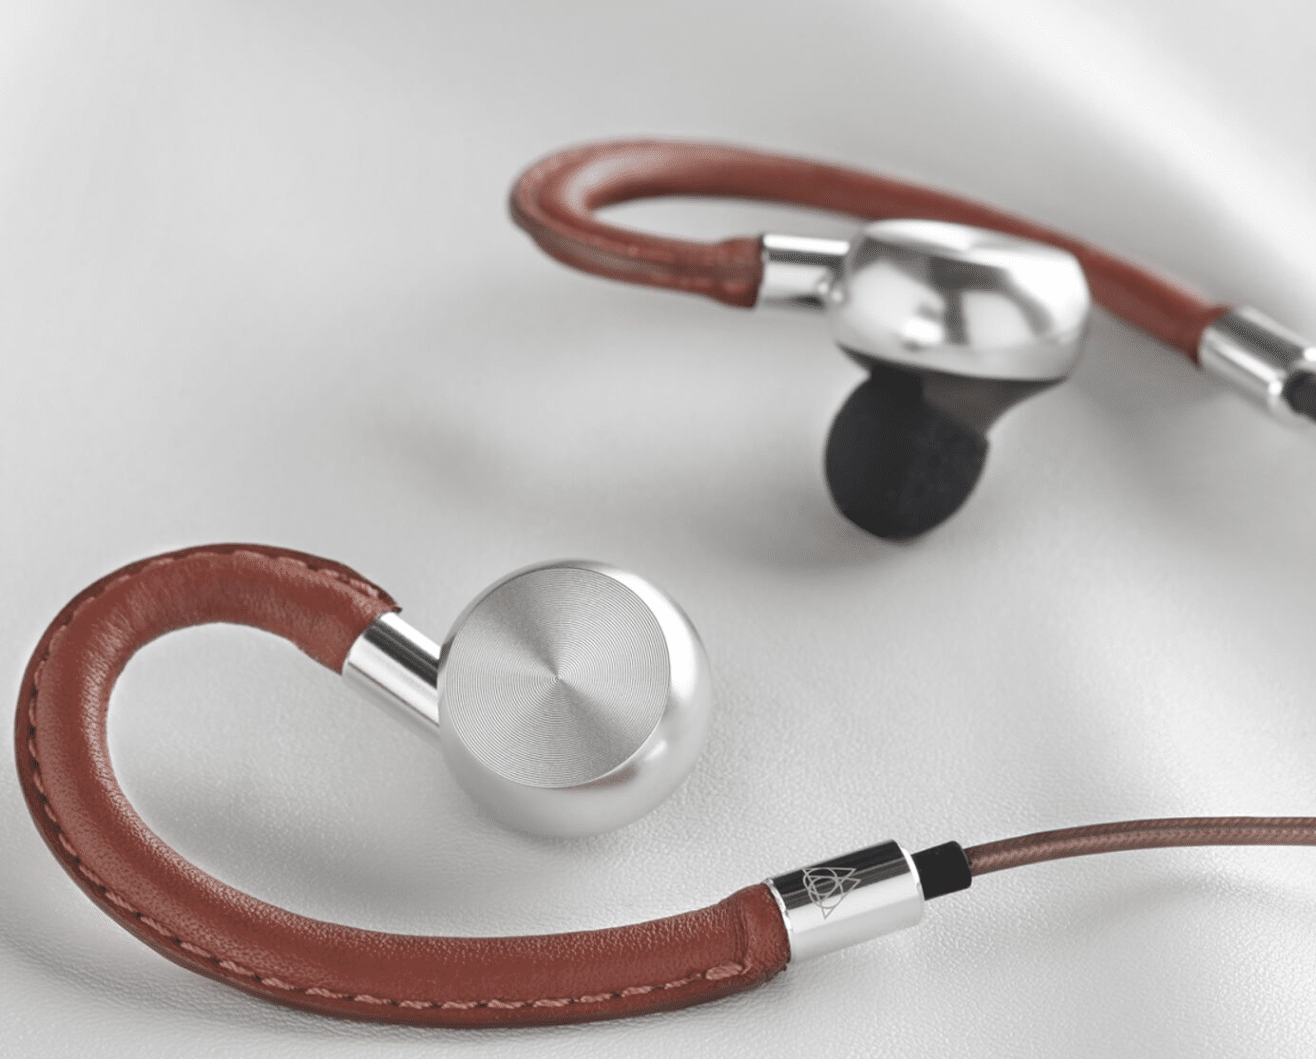 ODS-1 Earphones From aëdle